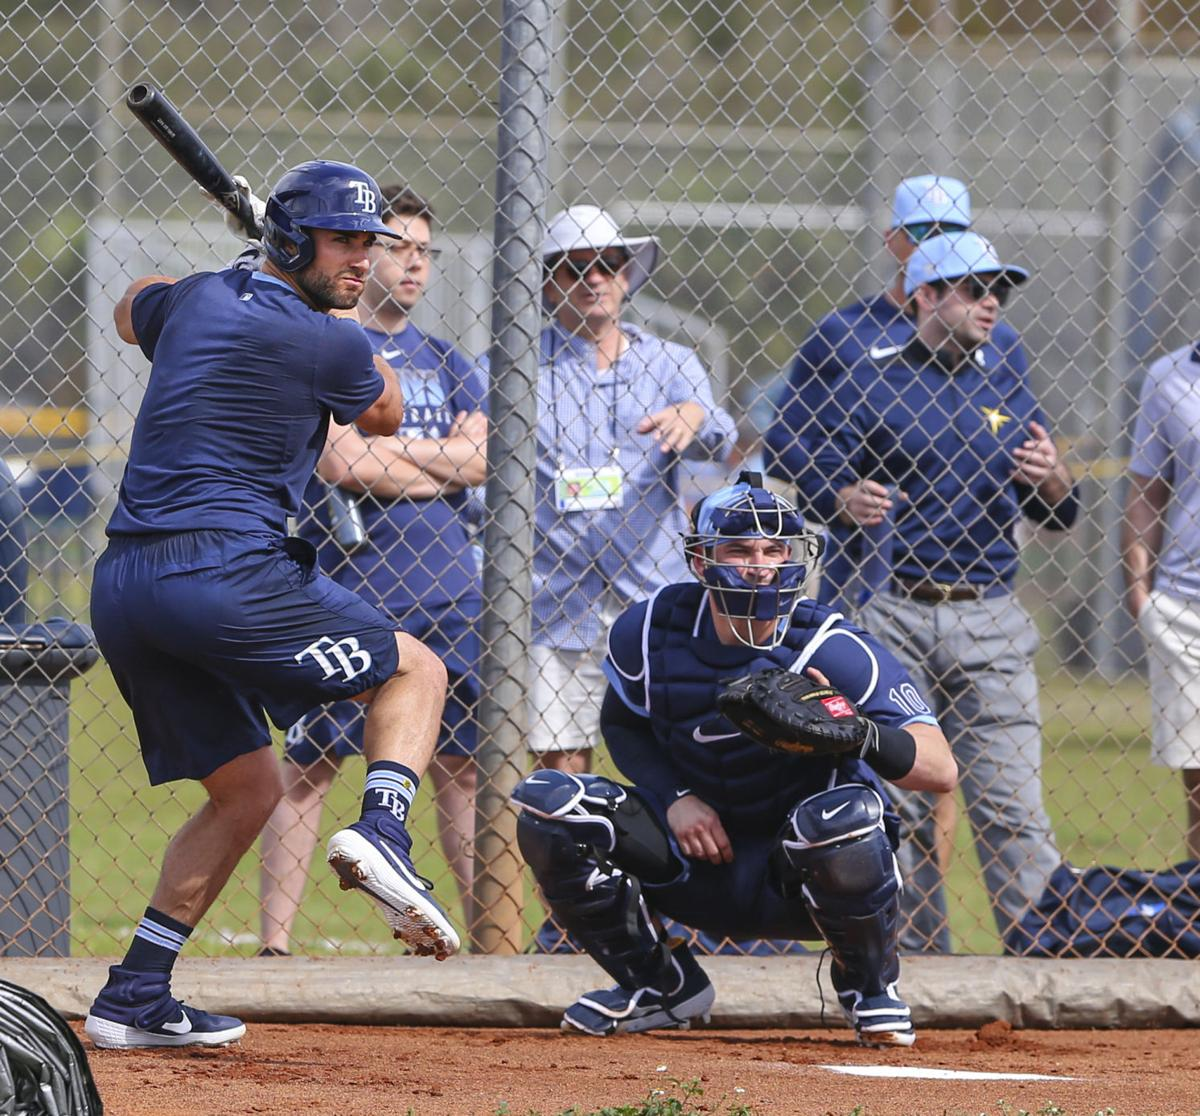 Rays Pitchers and Cathers